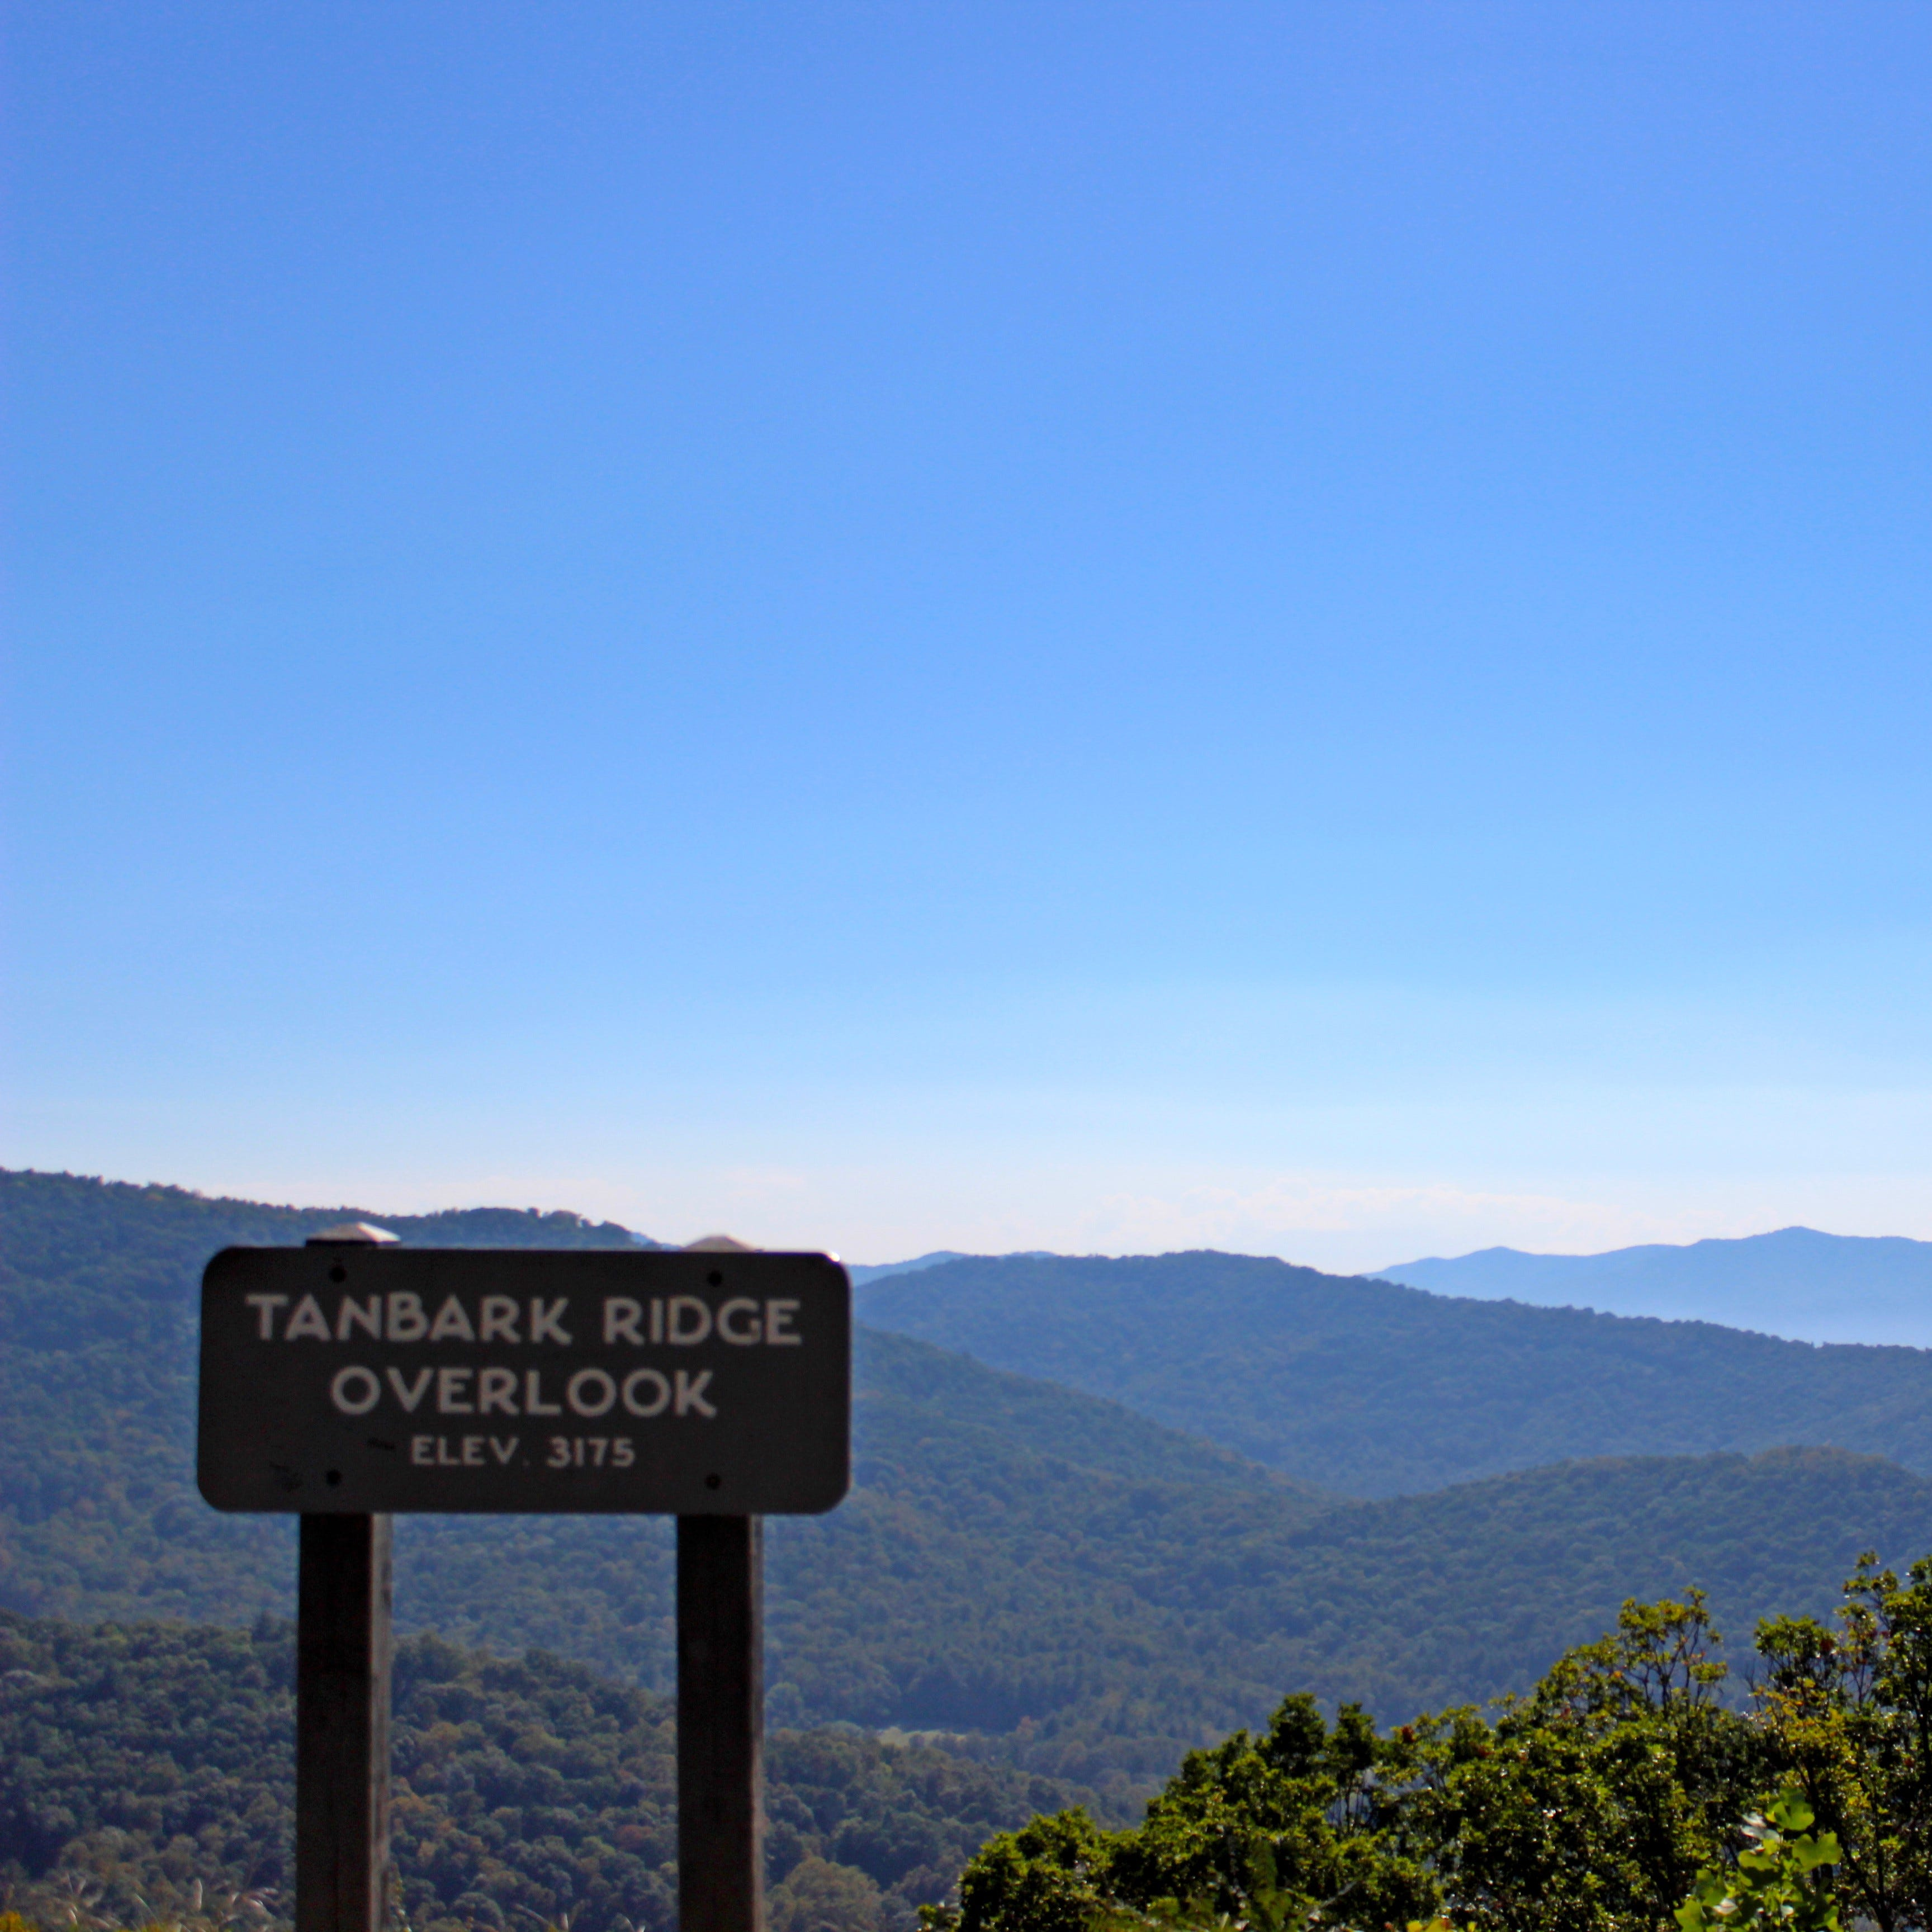 Man kills himself in Asheville area of Blue Ridge Parkway, marking 8th suicide this year